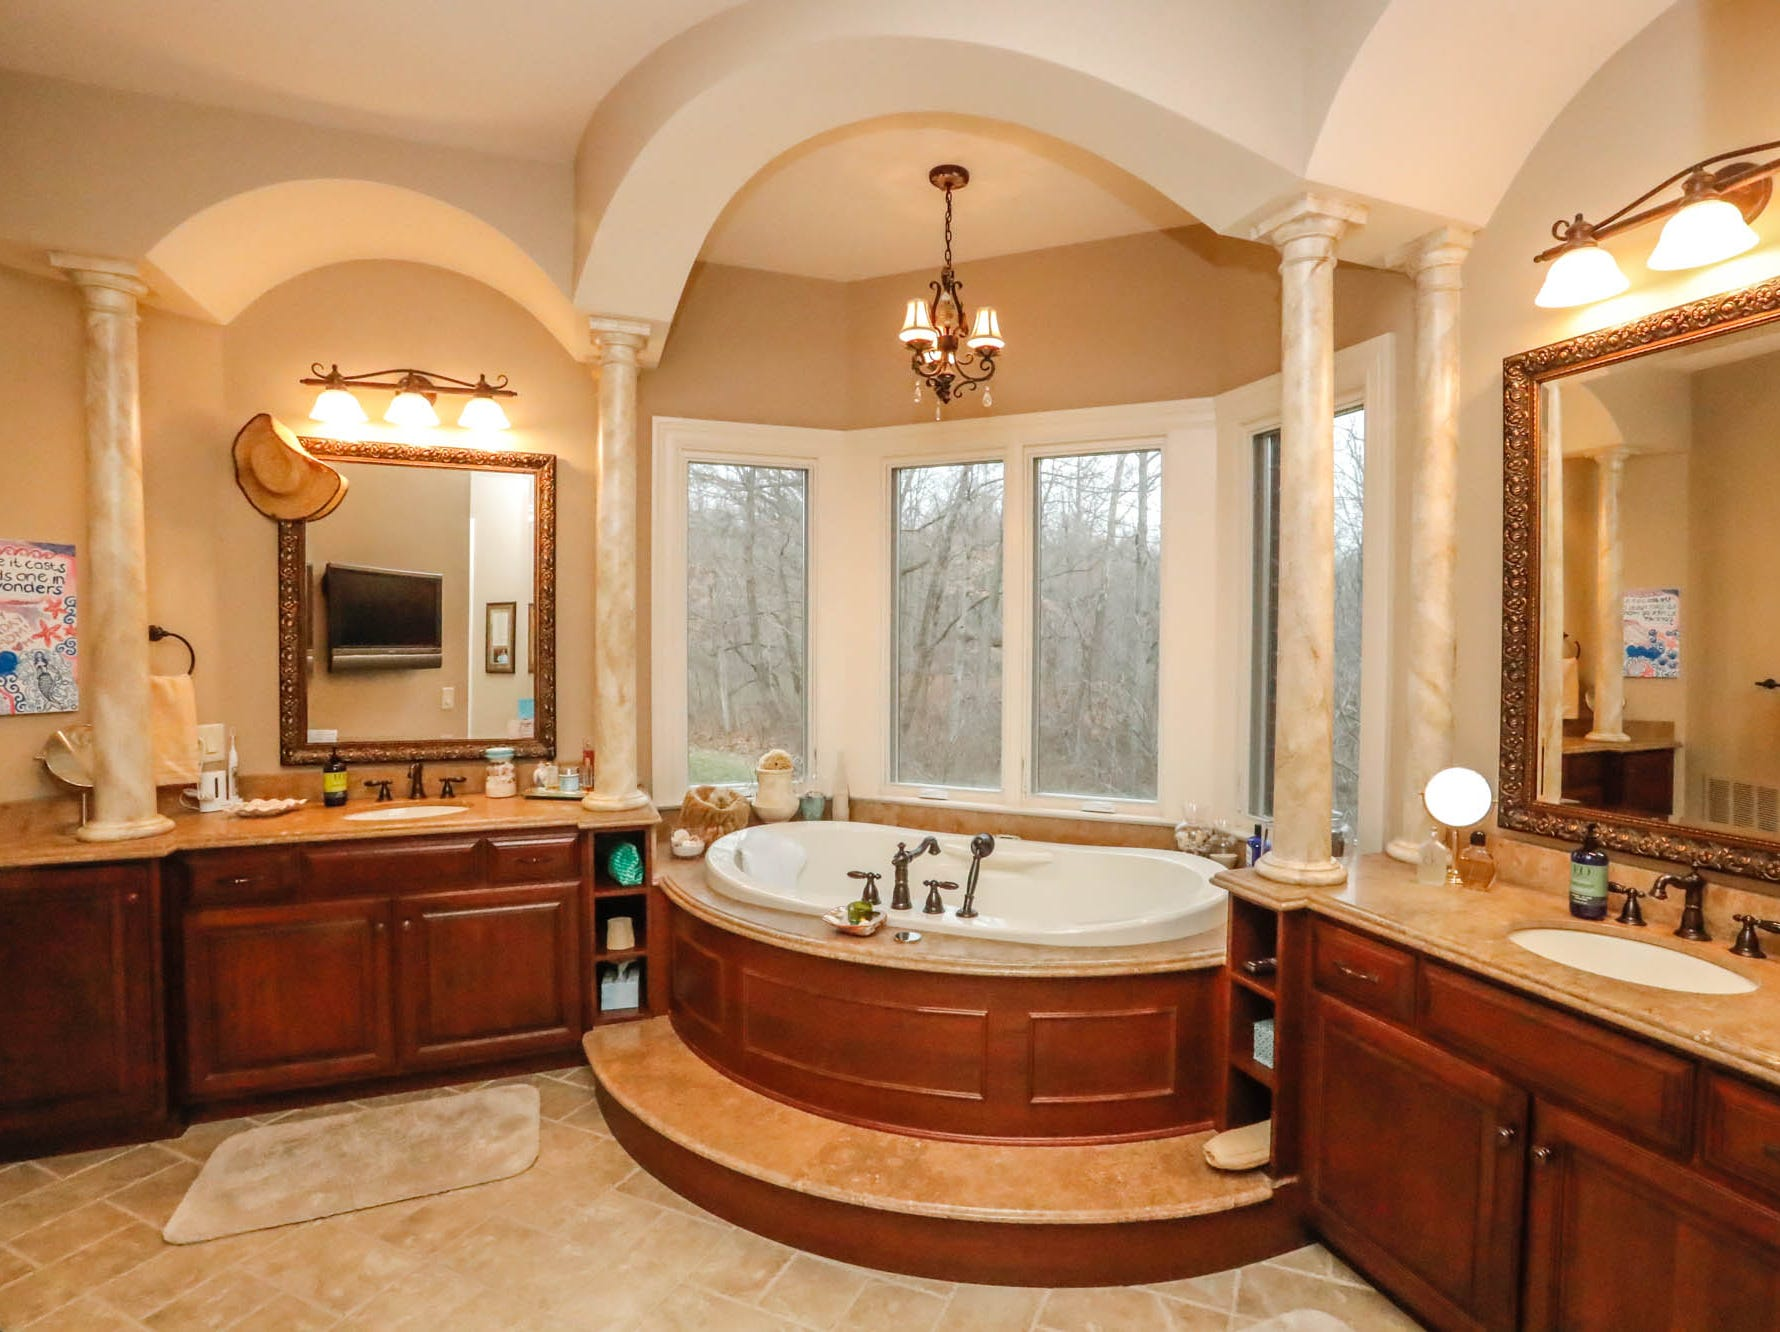 The master bath features double vanities, a soaking tub, and large walk-in shower in a $2 million Bargersville Ind. home up for sale on Wednesday, Jan. 9, 2019. The house sits on 8.1 acres.